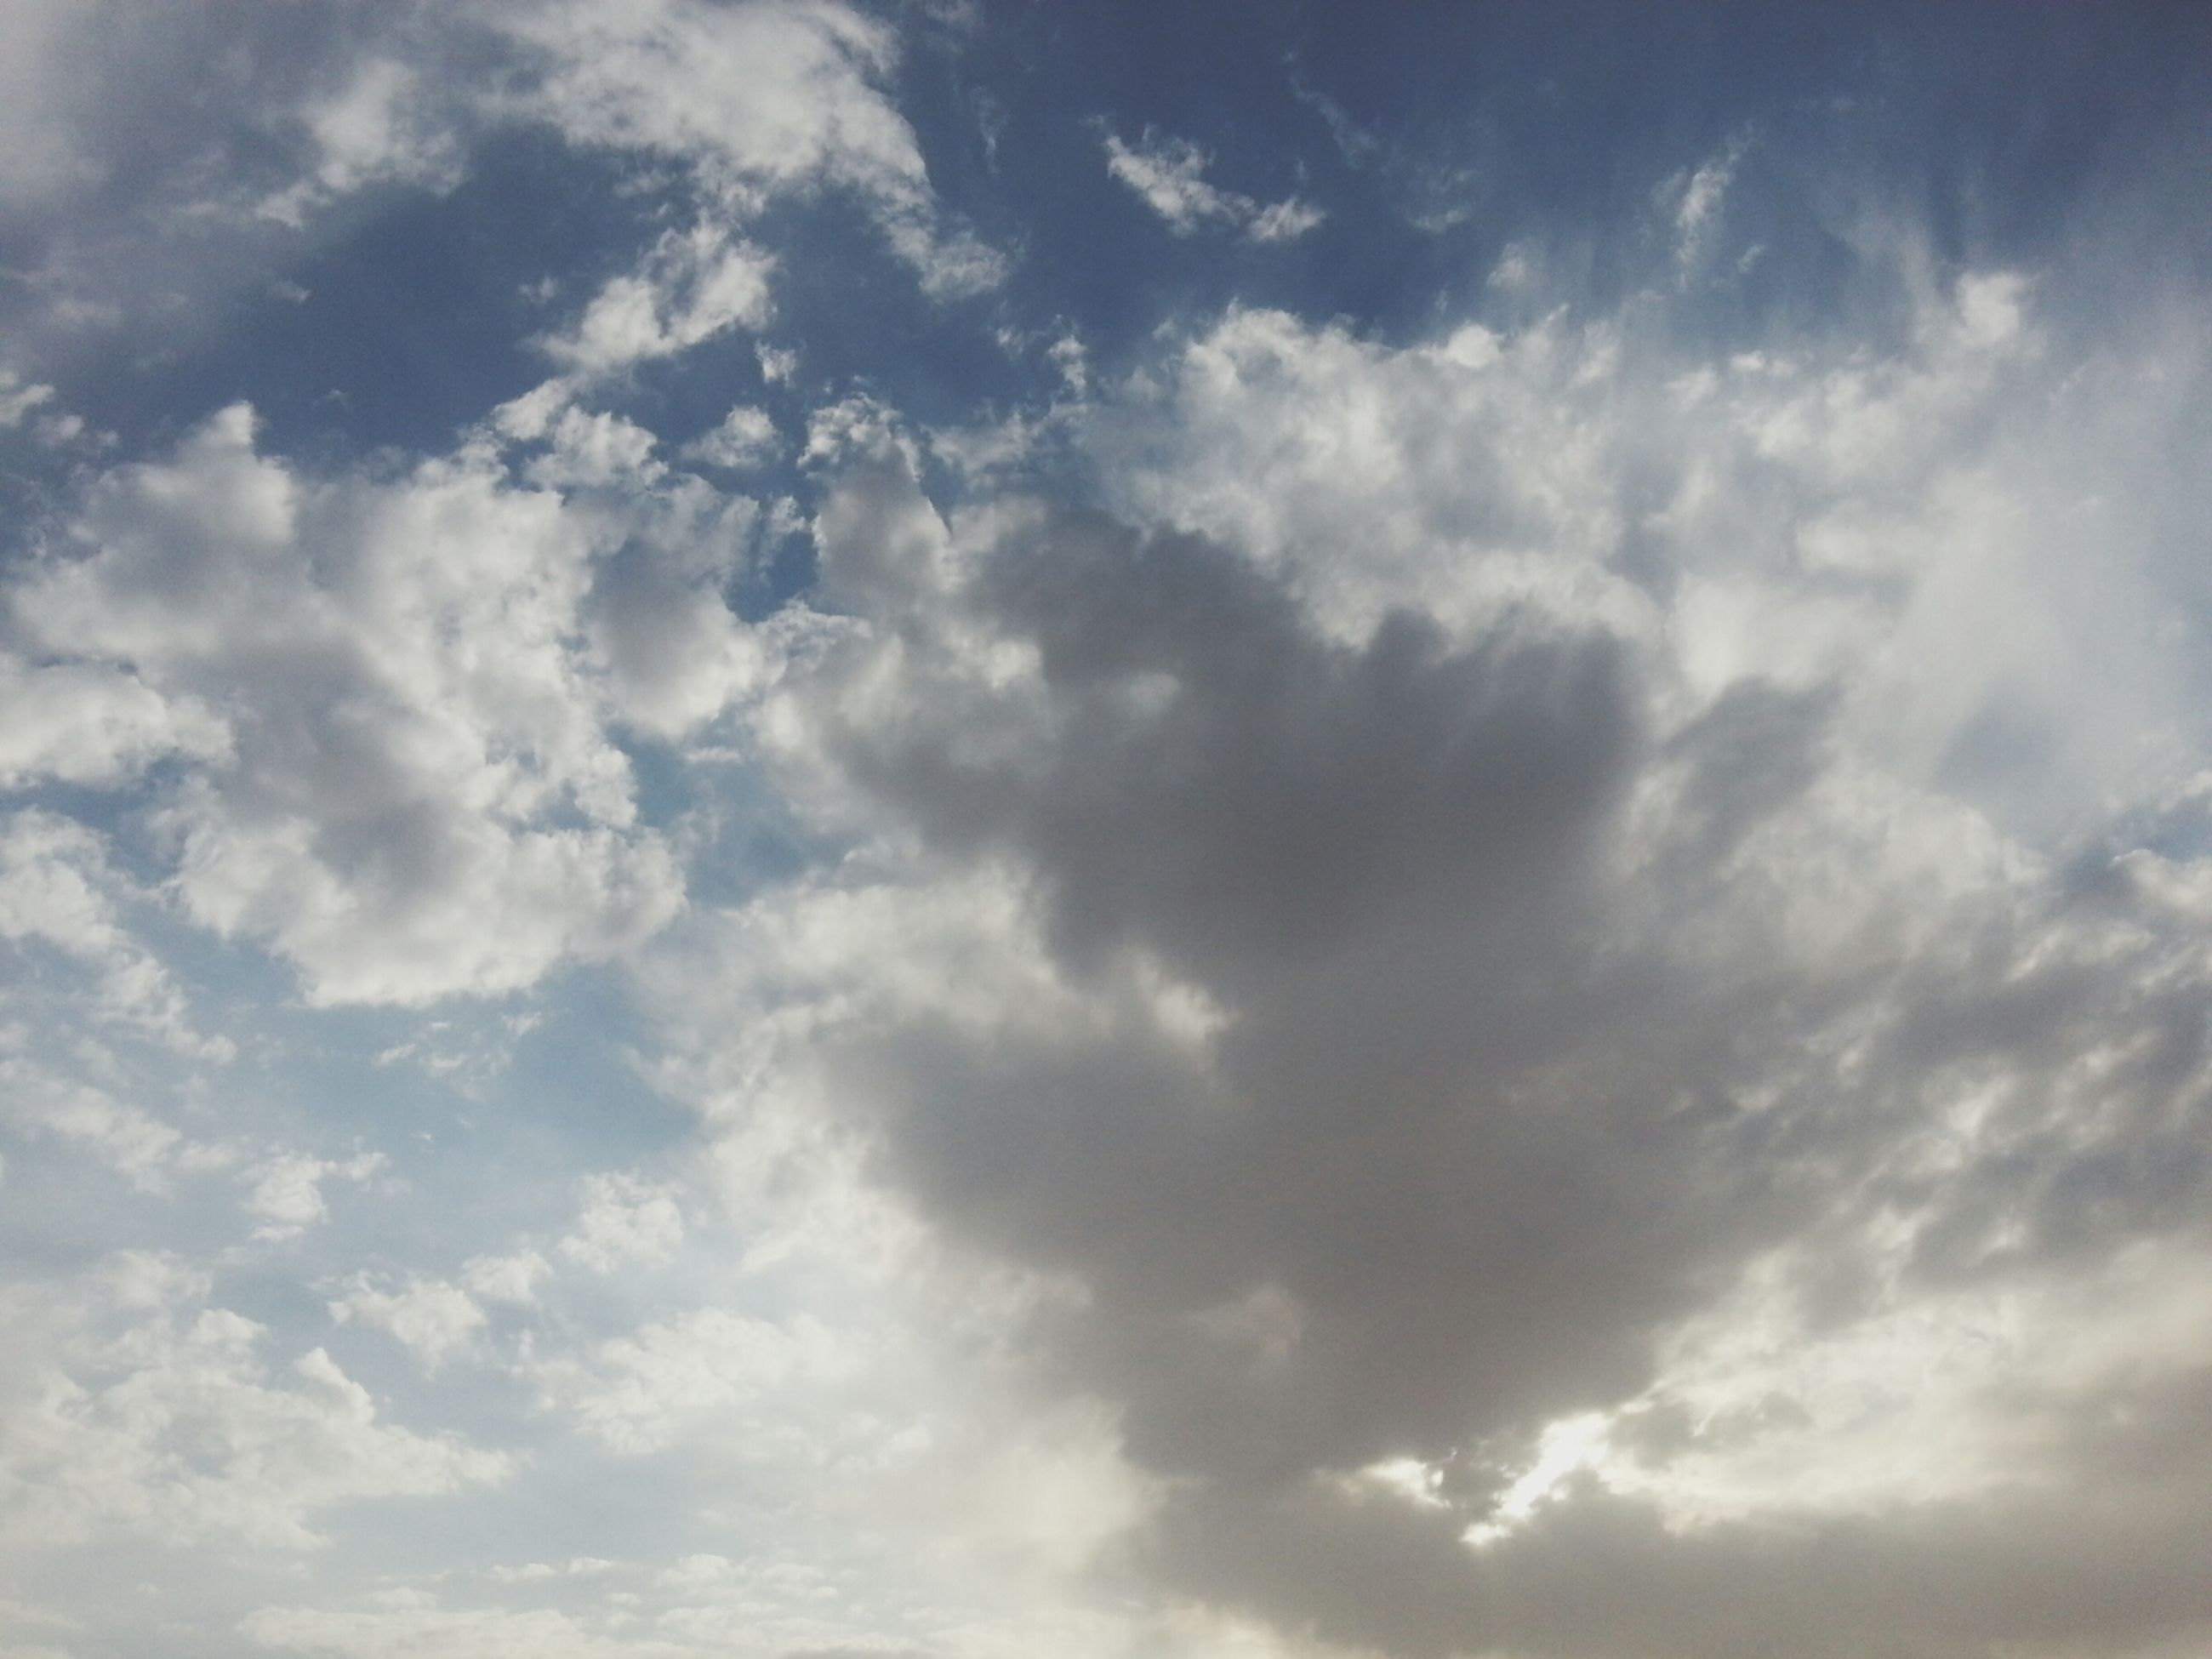 sky, cloud - sky, low angle view, cloudy, beauty in nature, tranquility, sky only, scenics, nature, tranquil scene, cloudscape, cloud, backgrounds, white color, weather, idyllic, full frame, day, outdoors, no people